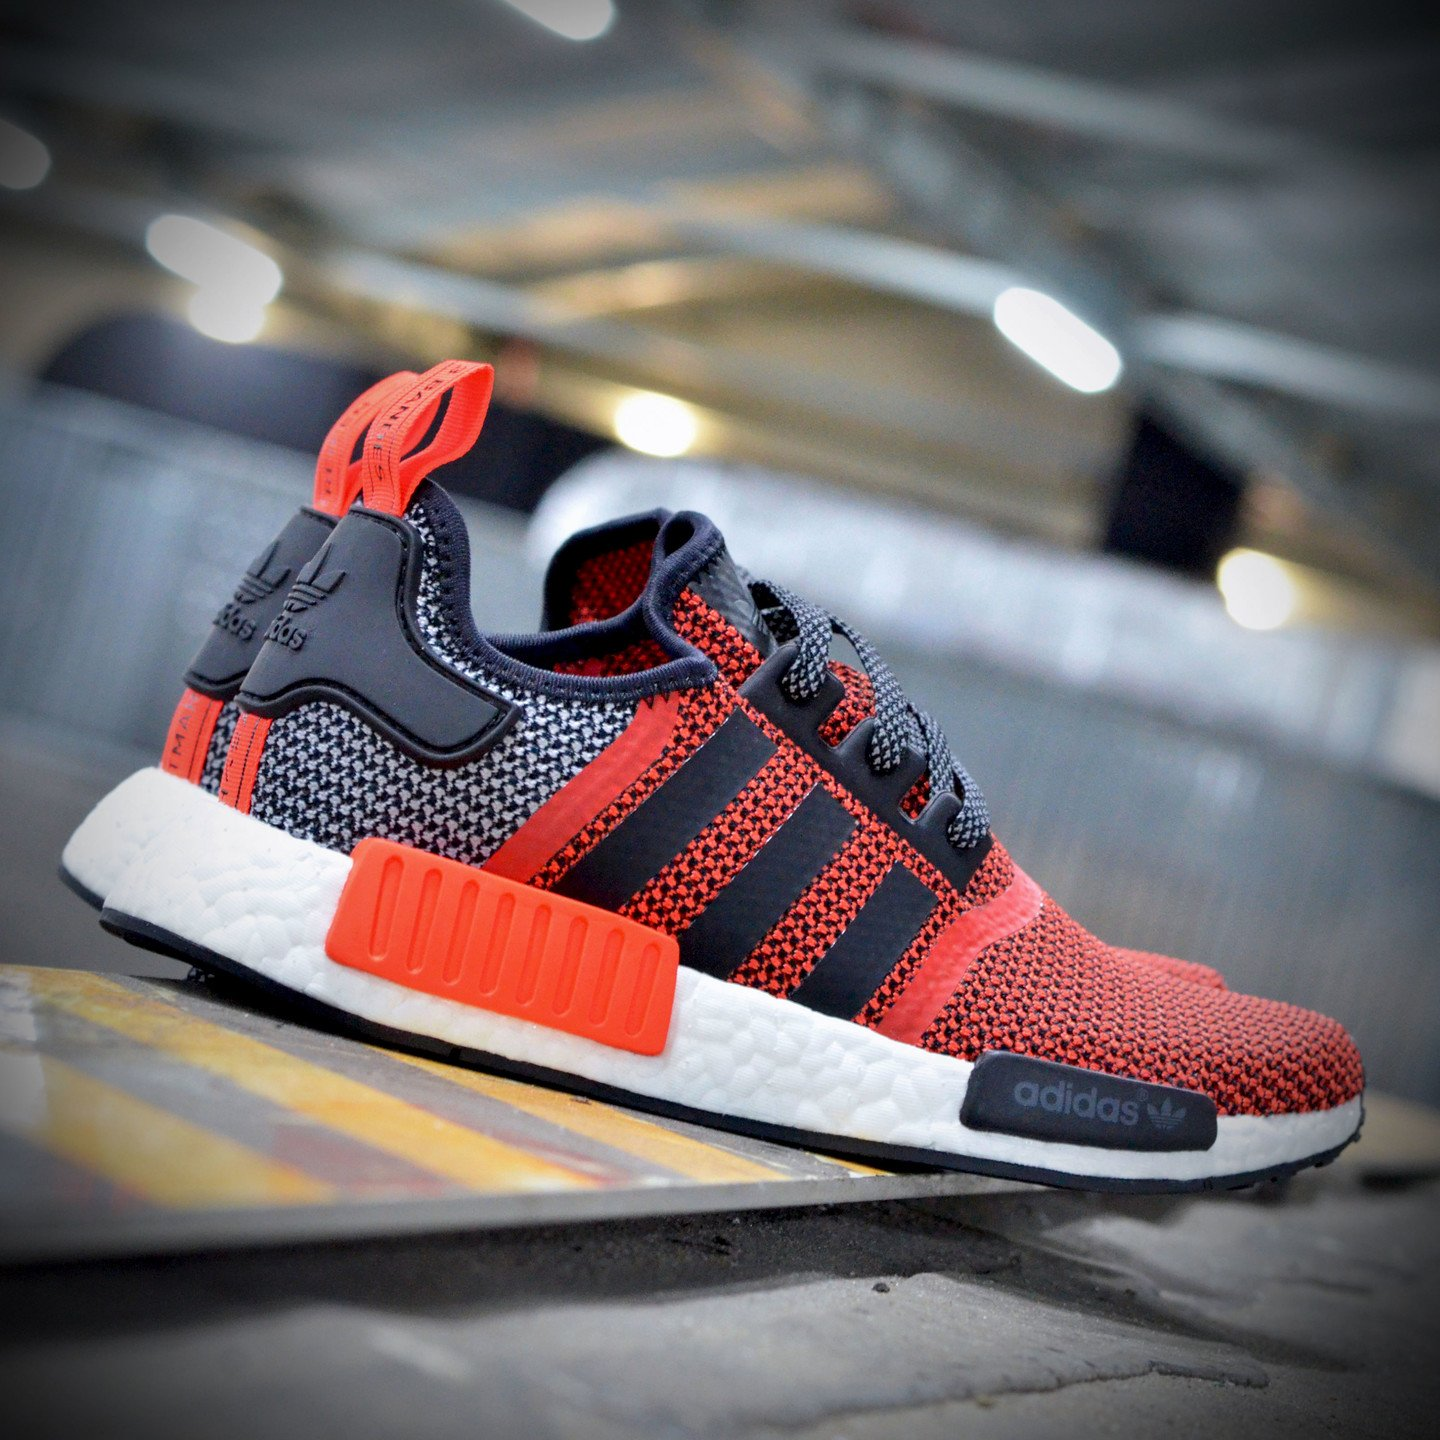 Adidas NMD R1 Runner Lush Red / Core Black S79158-45.33